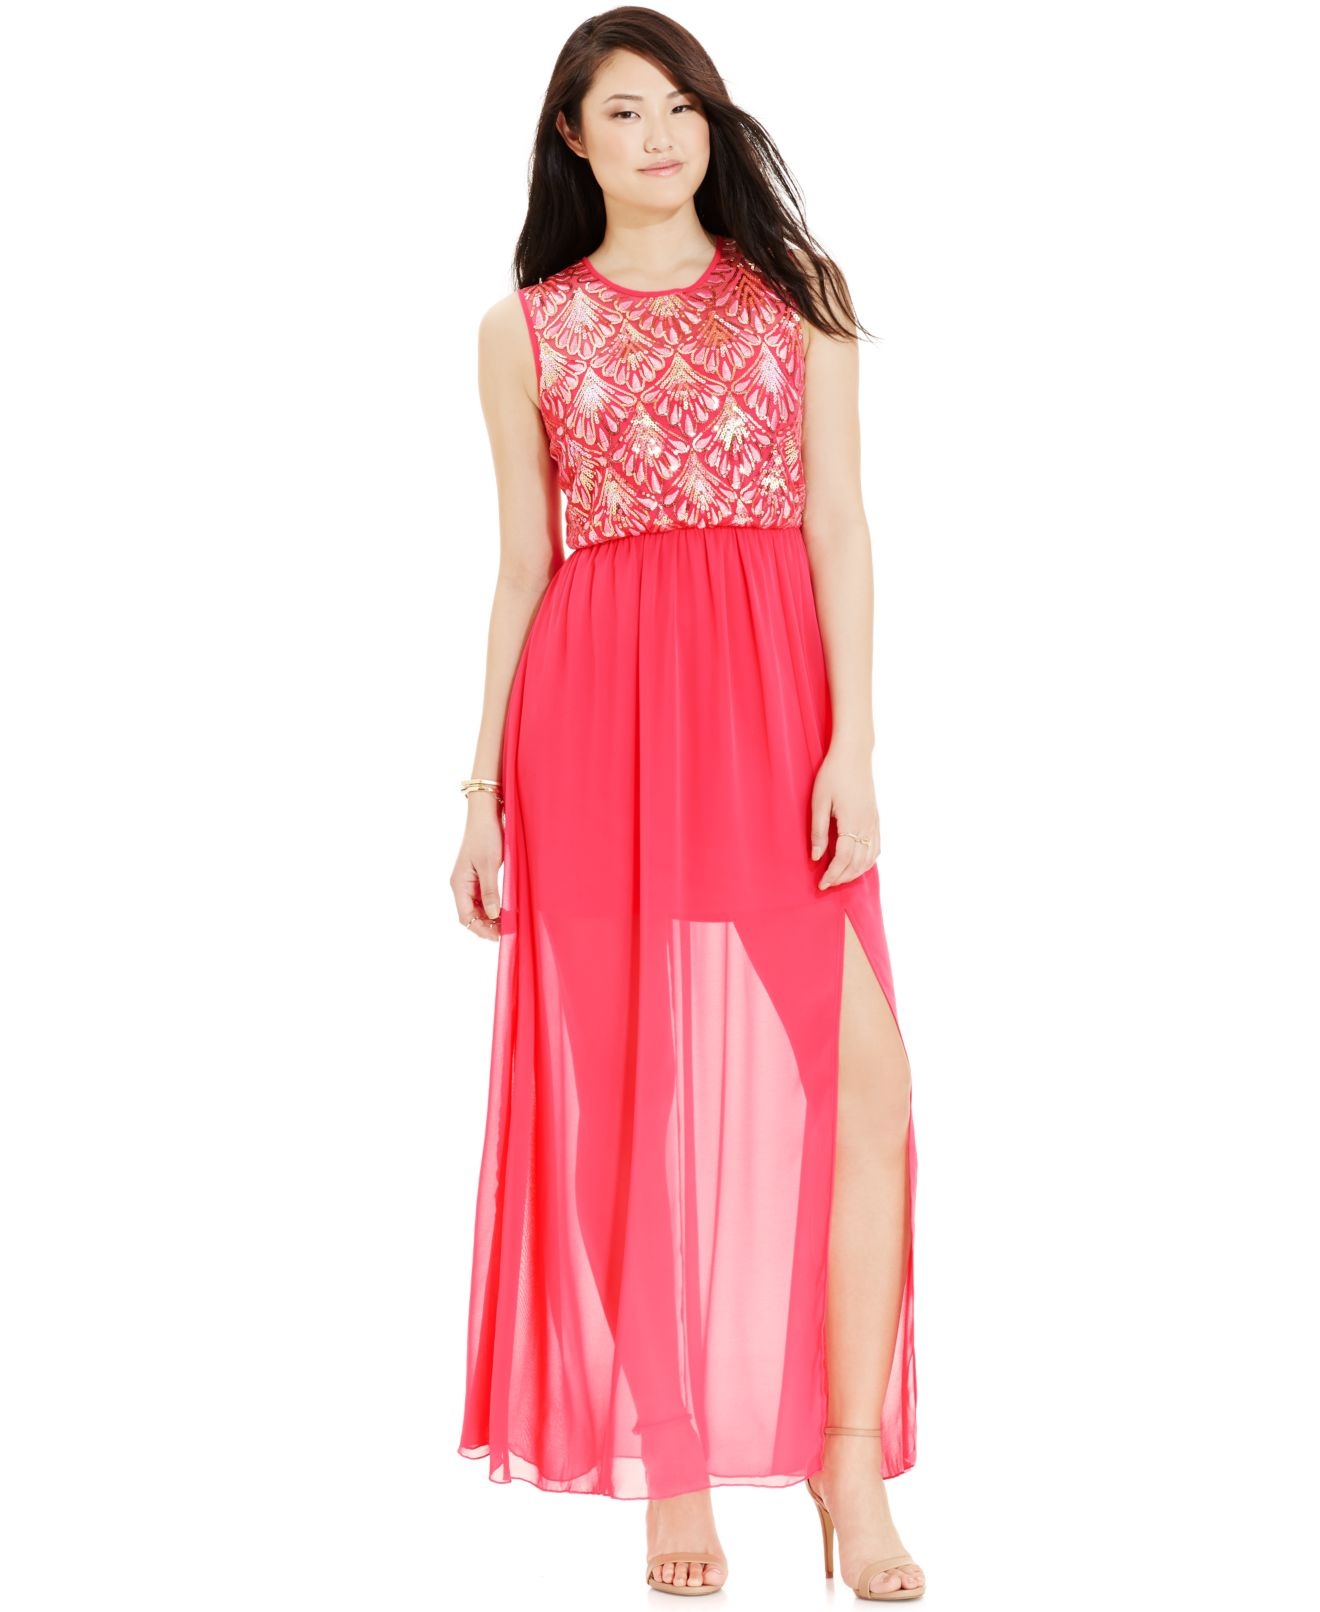 Maxi Dresses For Teenagers